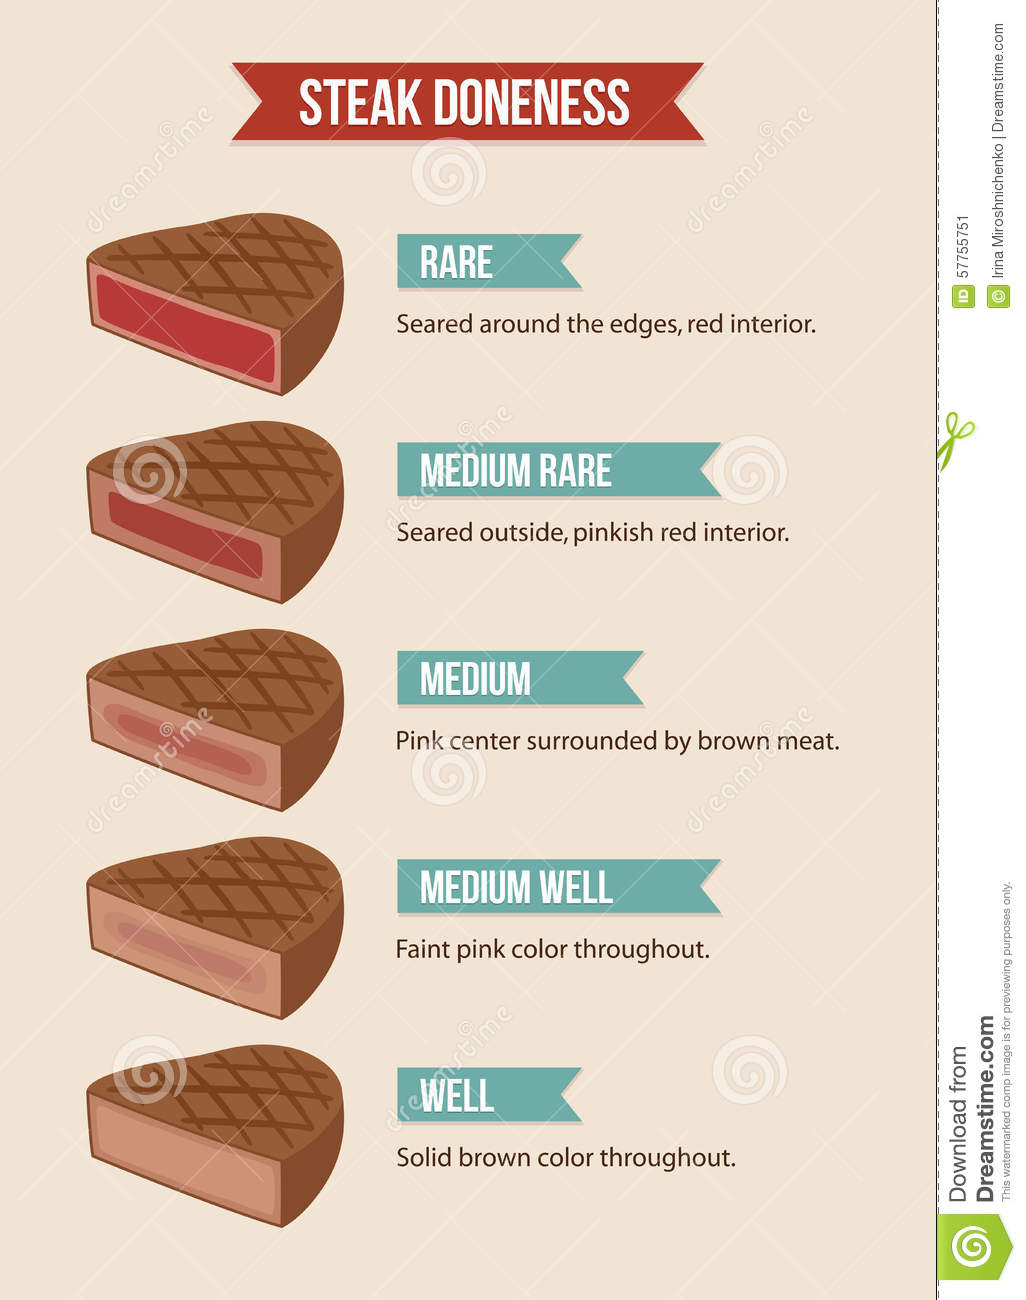 Infographic: The Ultimate Steak Doneness Chart ... |Restuarant Steak Doneness Chart